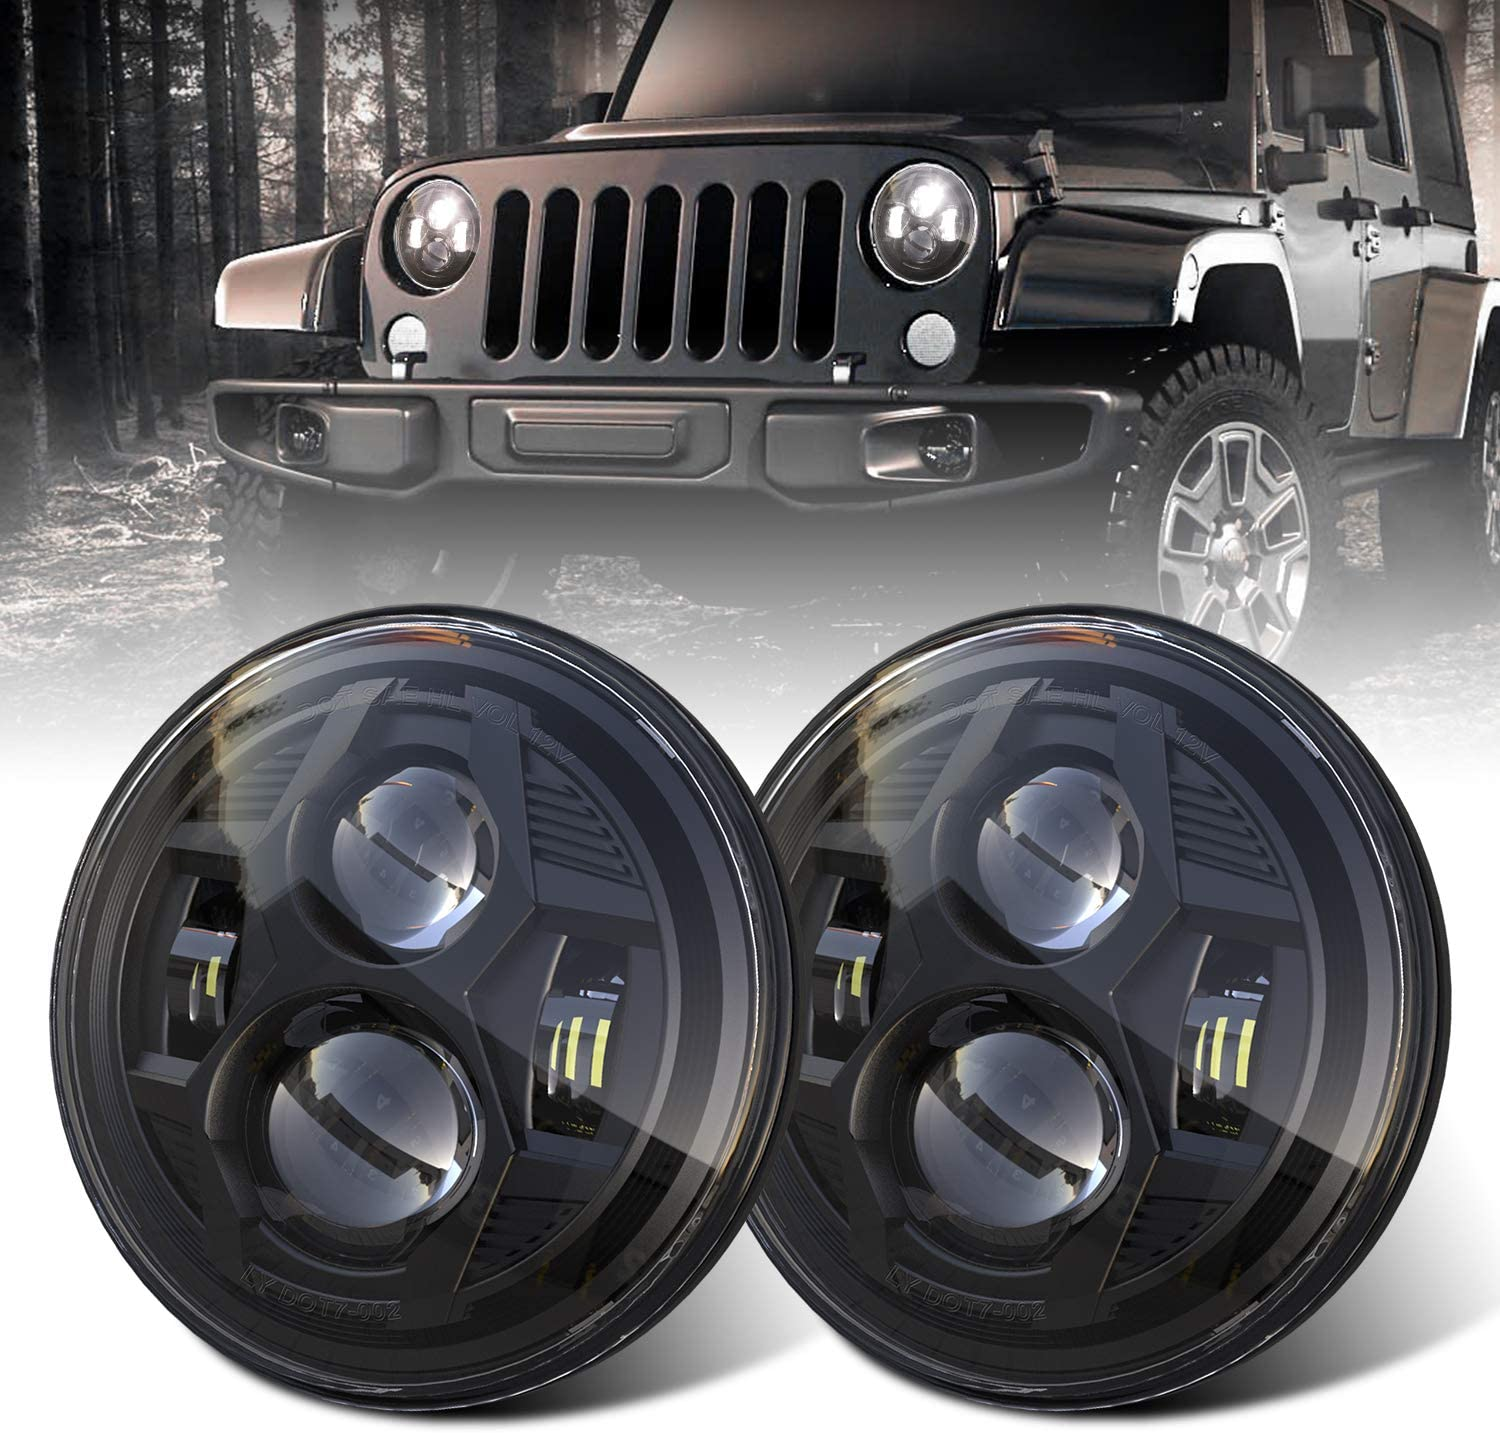 DOT 7 Inch Round LED Headlights Compatible Jeep JK Ranking TOP11 New sales Wrangler with